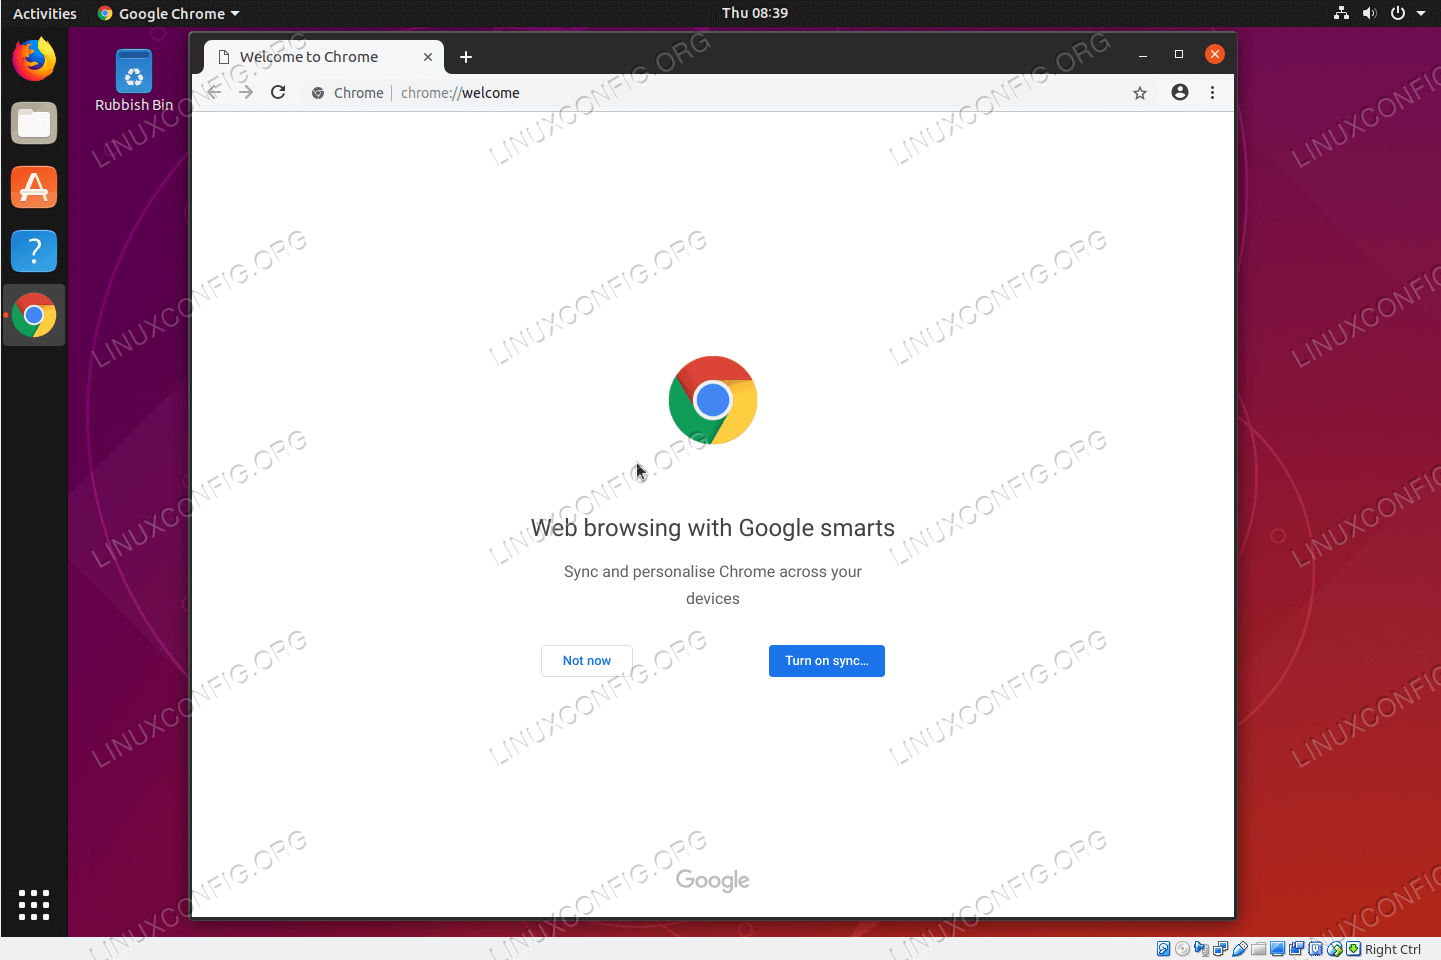 Google Chrome Browser on Ubuntu 18.10 Cosmic Cuttlefish Linux